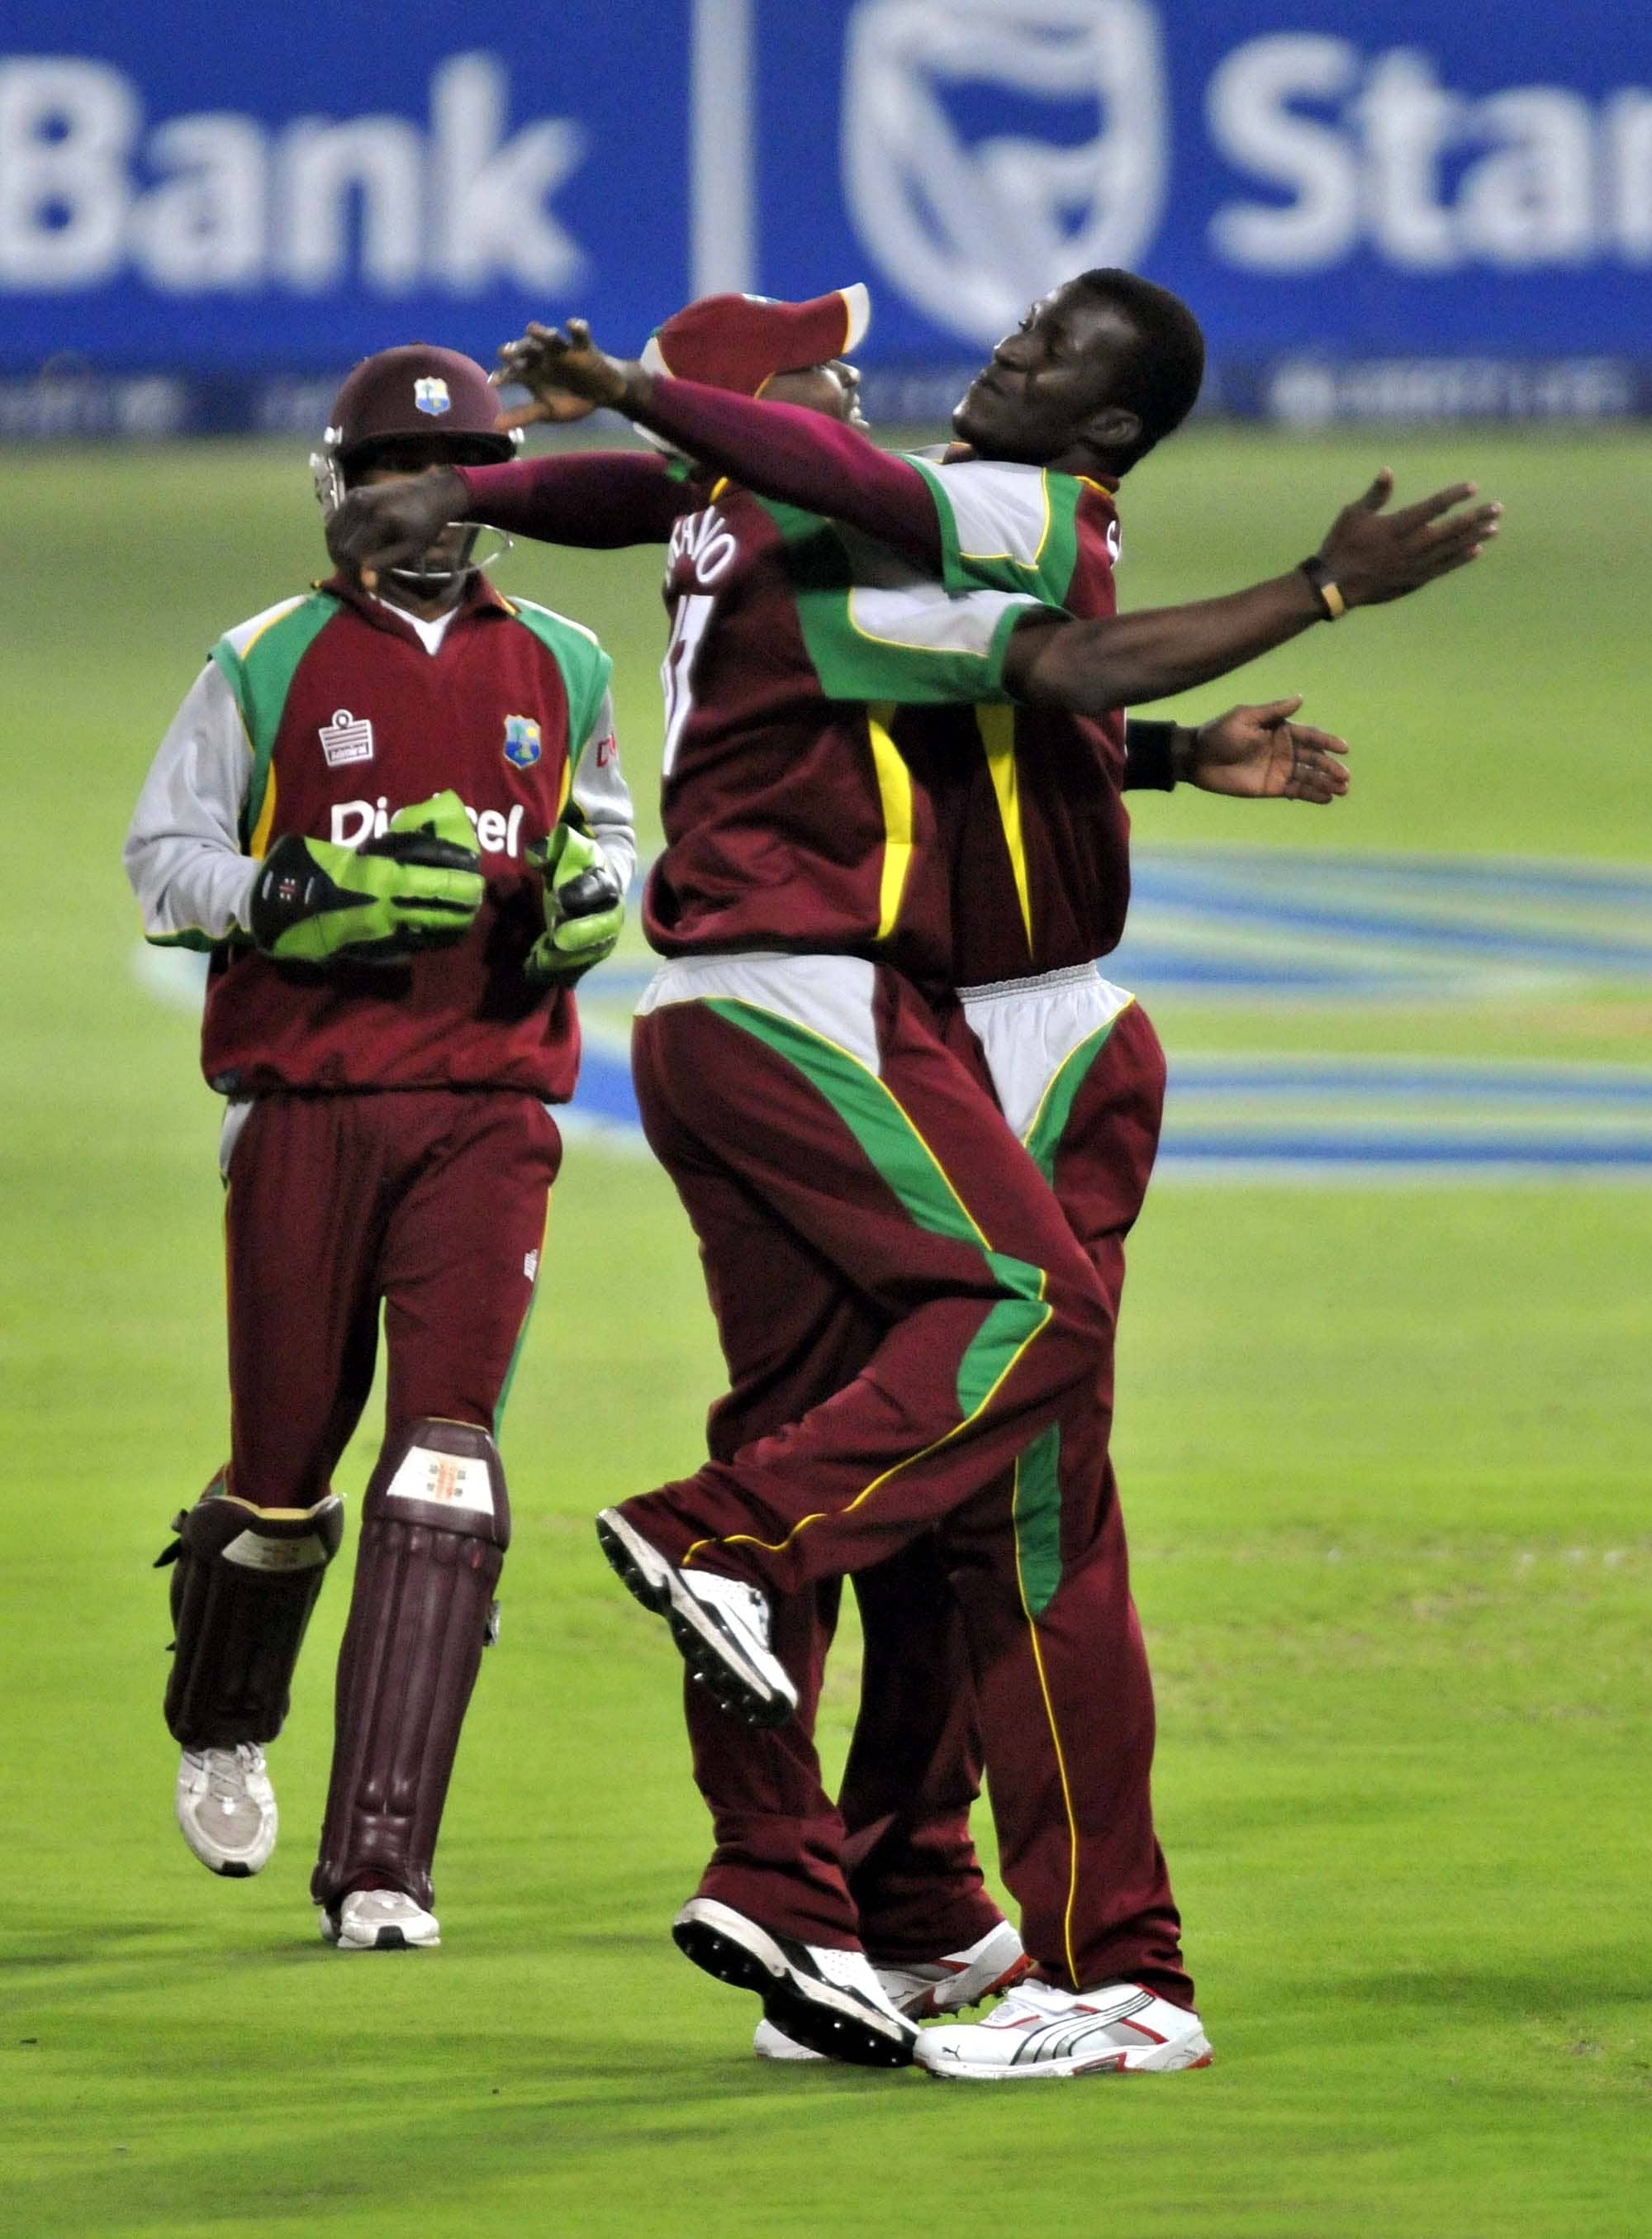 Daren Sammy & Dwane Bravo celebrate taking the wicket of JP Duminy, during their first Pro 20 international in Johannesburg on Friday, January 18, 2008.